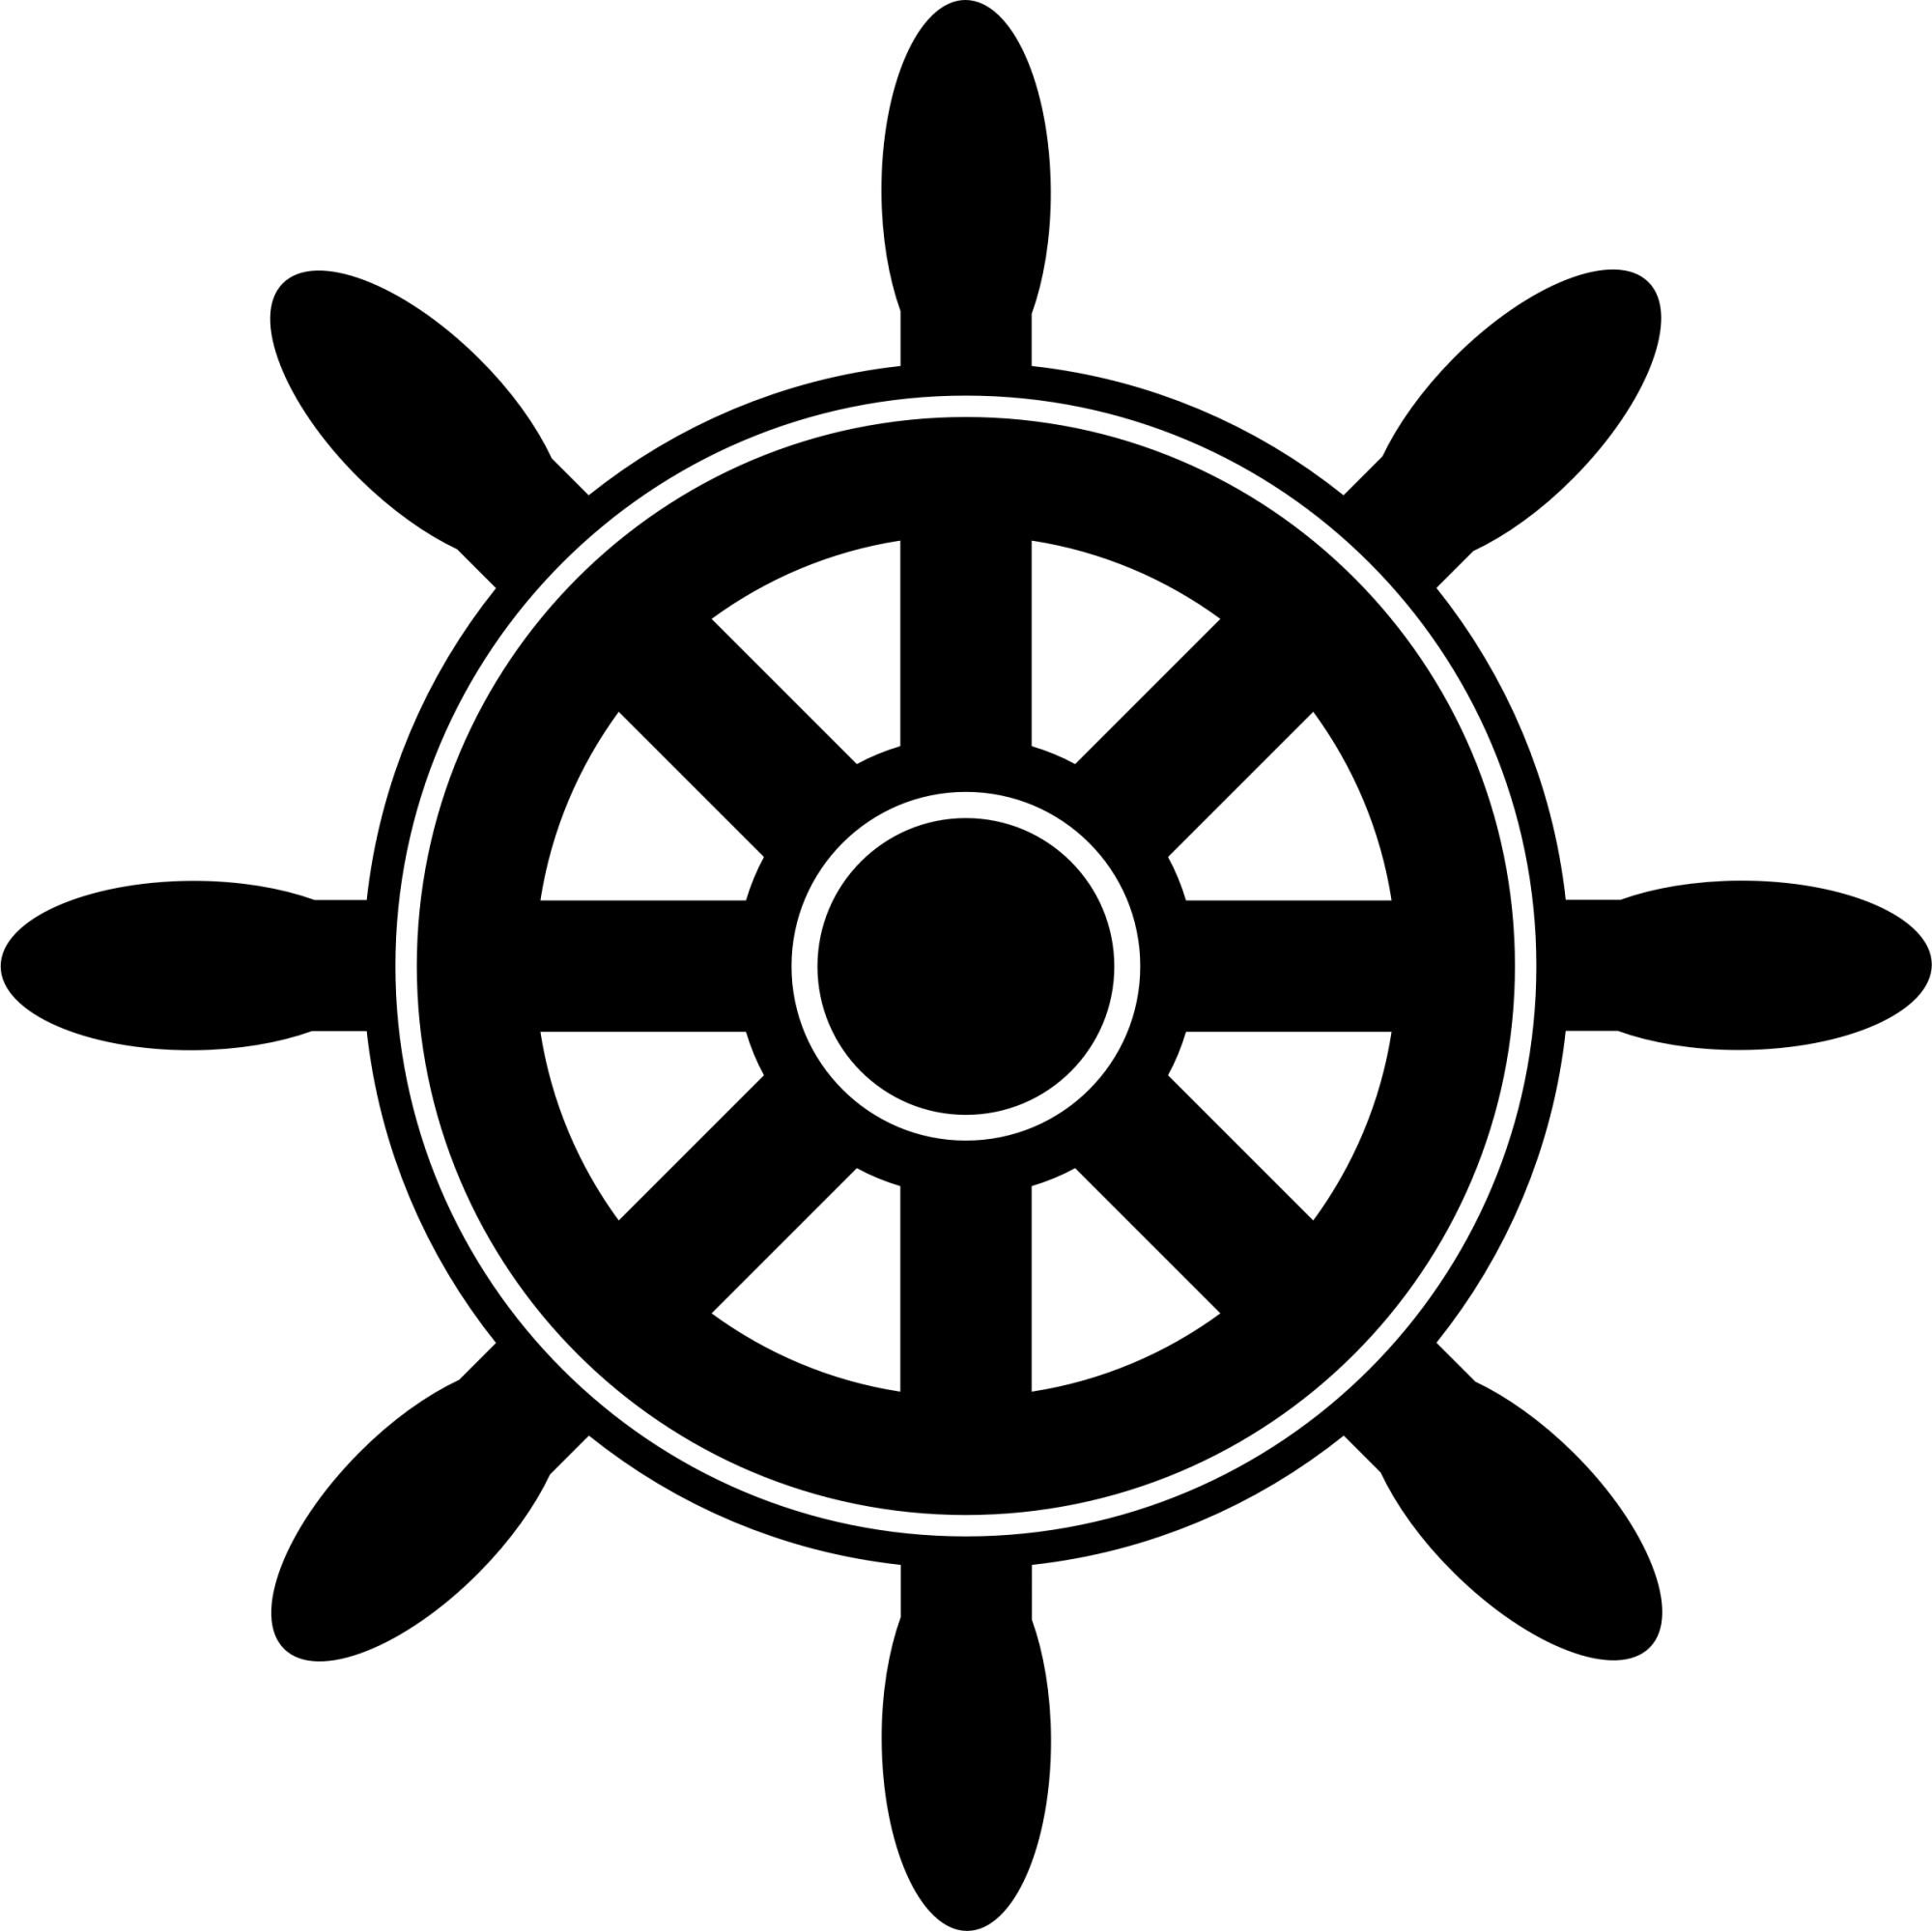 hight resolution of boat wheel clipart